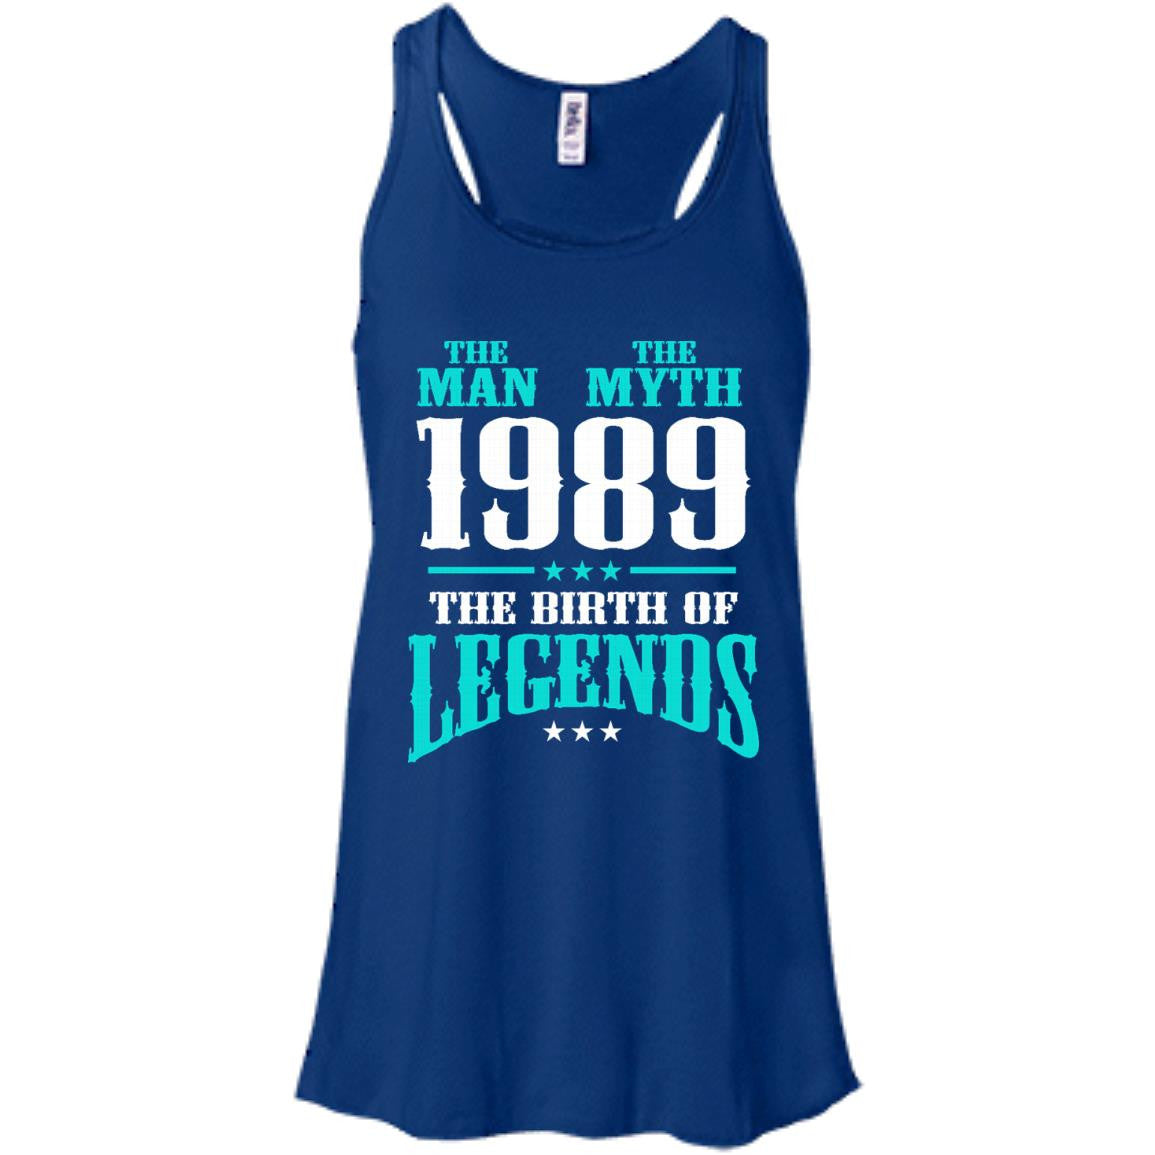 1989 Shirts The Man The Myth The Birth of Legends T-shirts Hoodies Sweatshirts